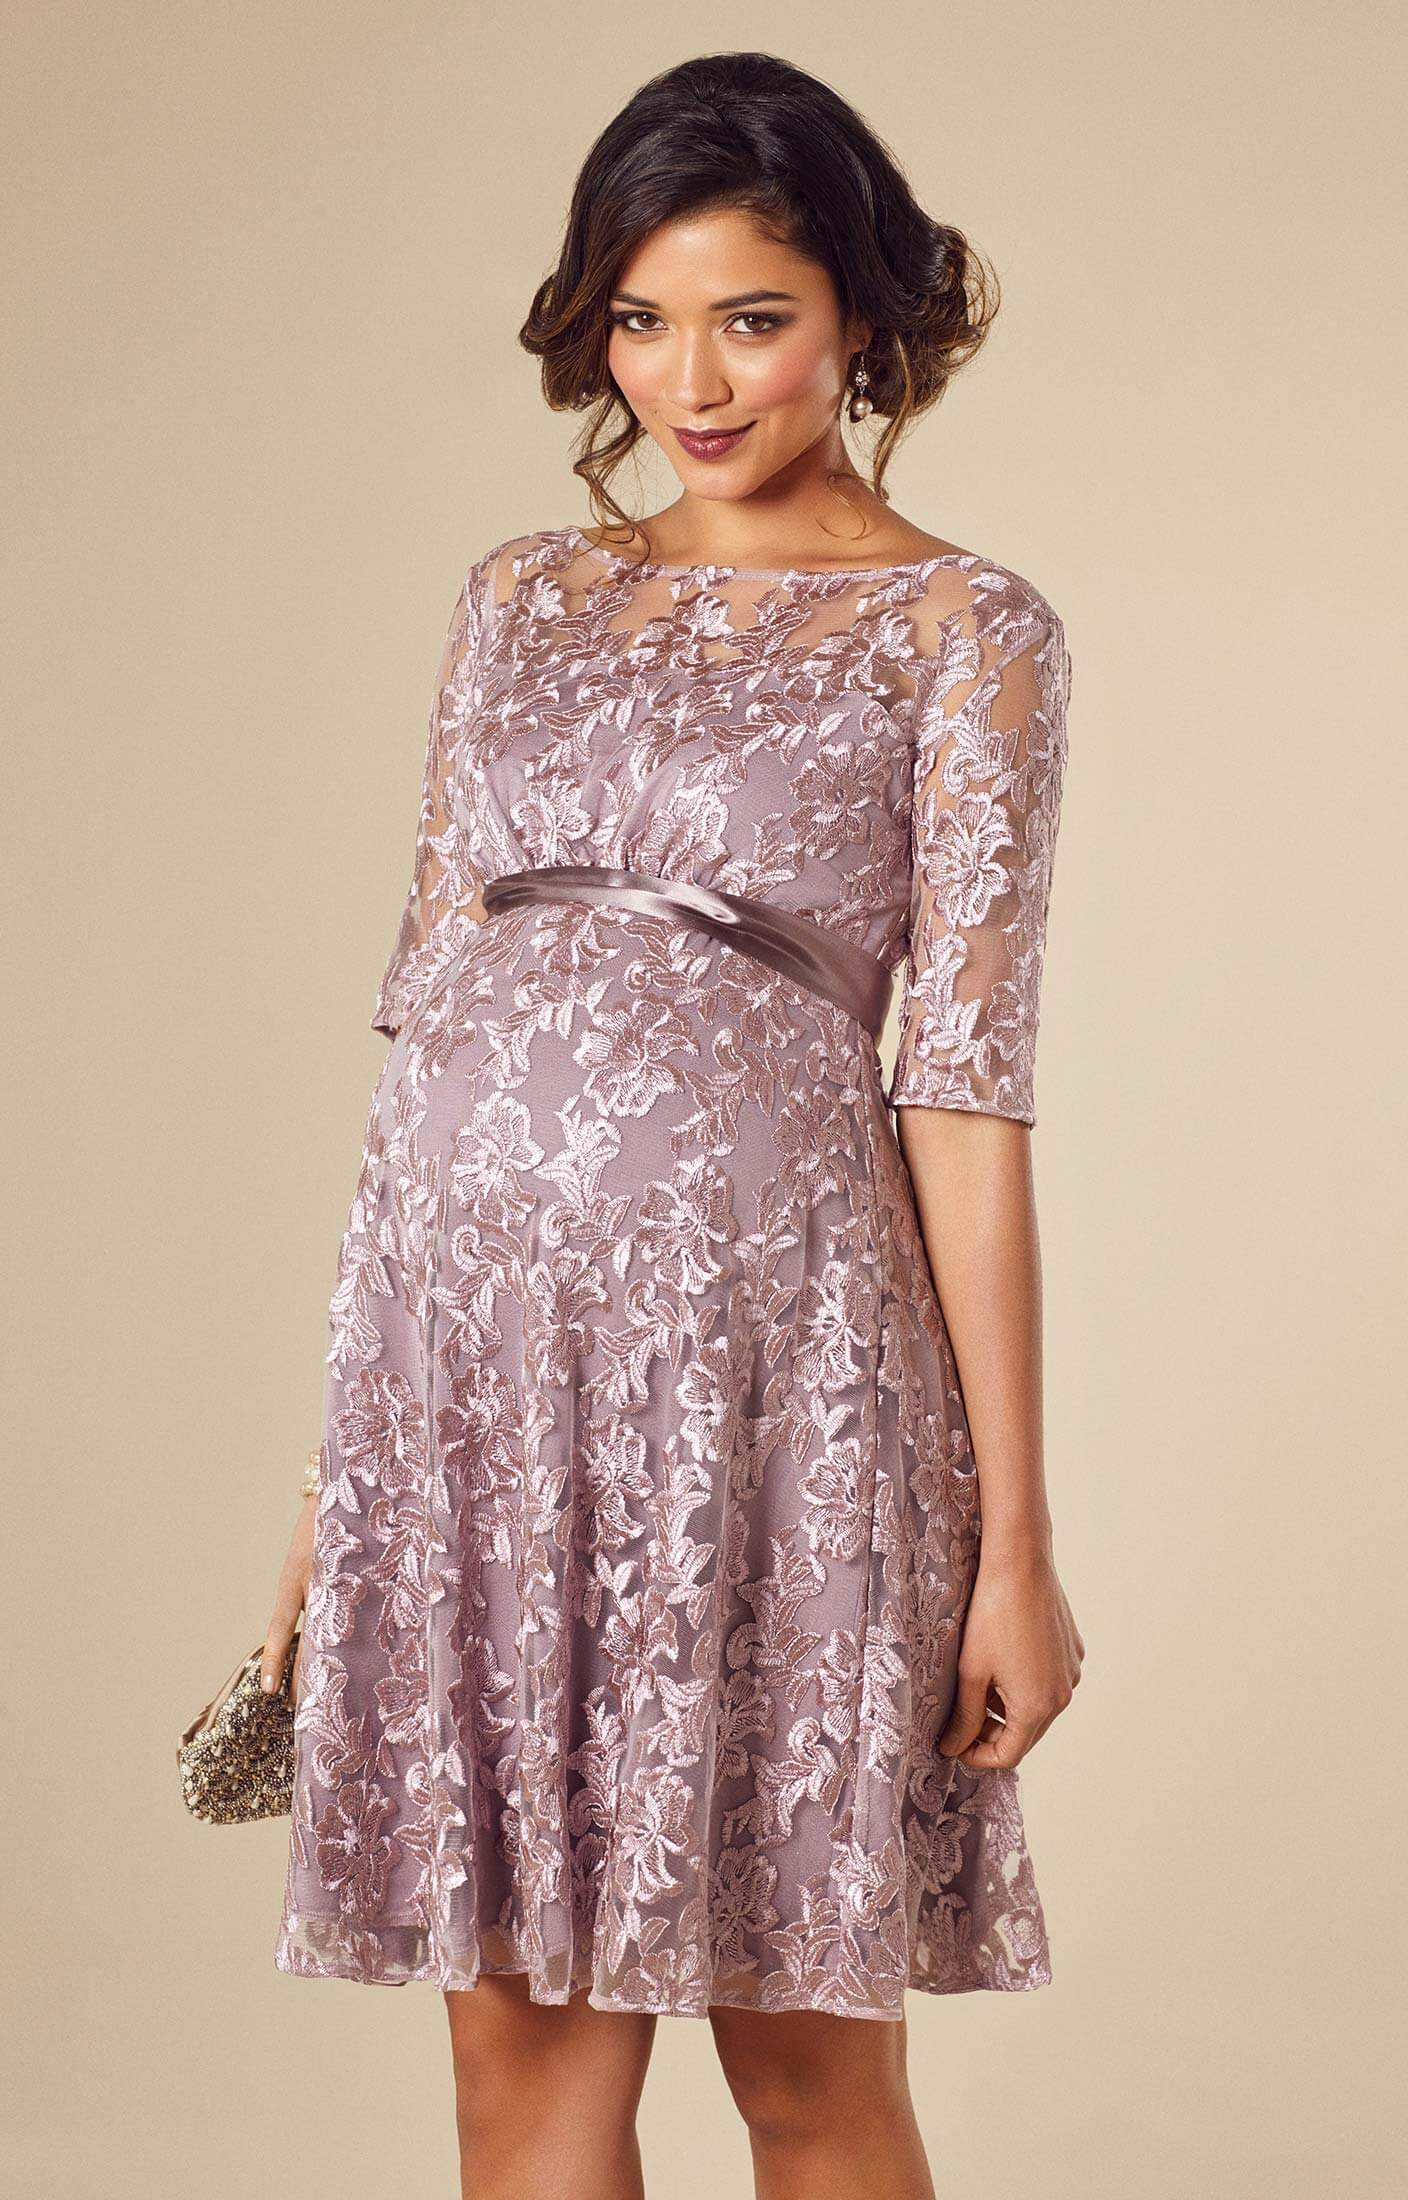 Asha maternity dress lilac maternity wedding dresses for Wedding guest pregnancy dresses